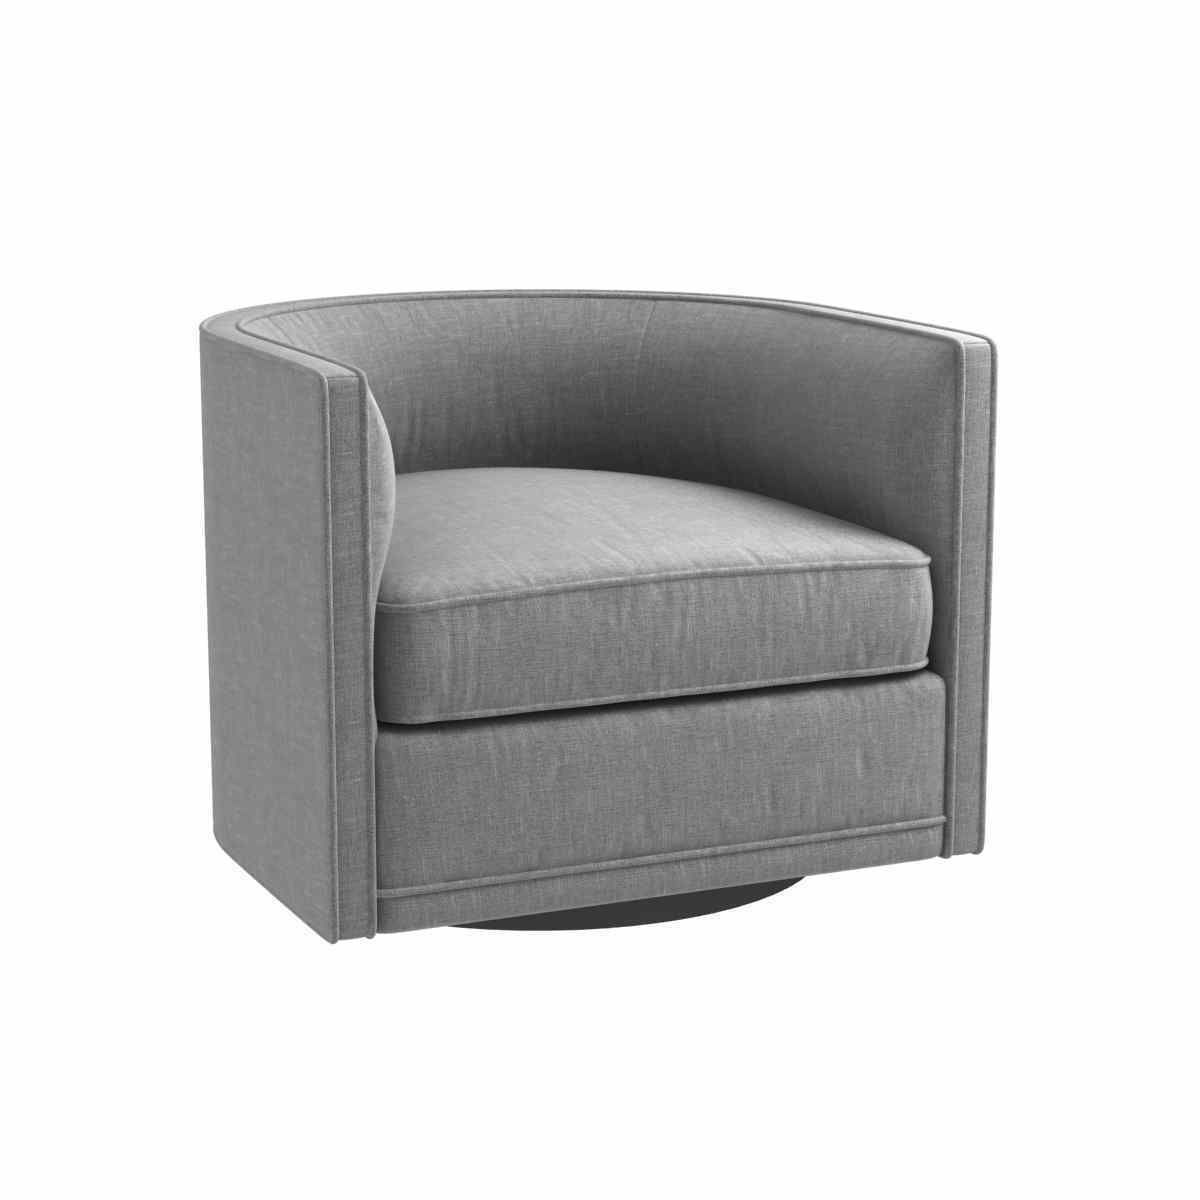 Custom Made Grey Swivel Round Chair 3d Model